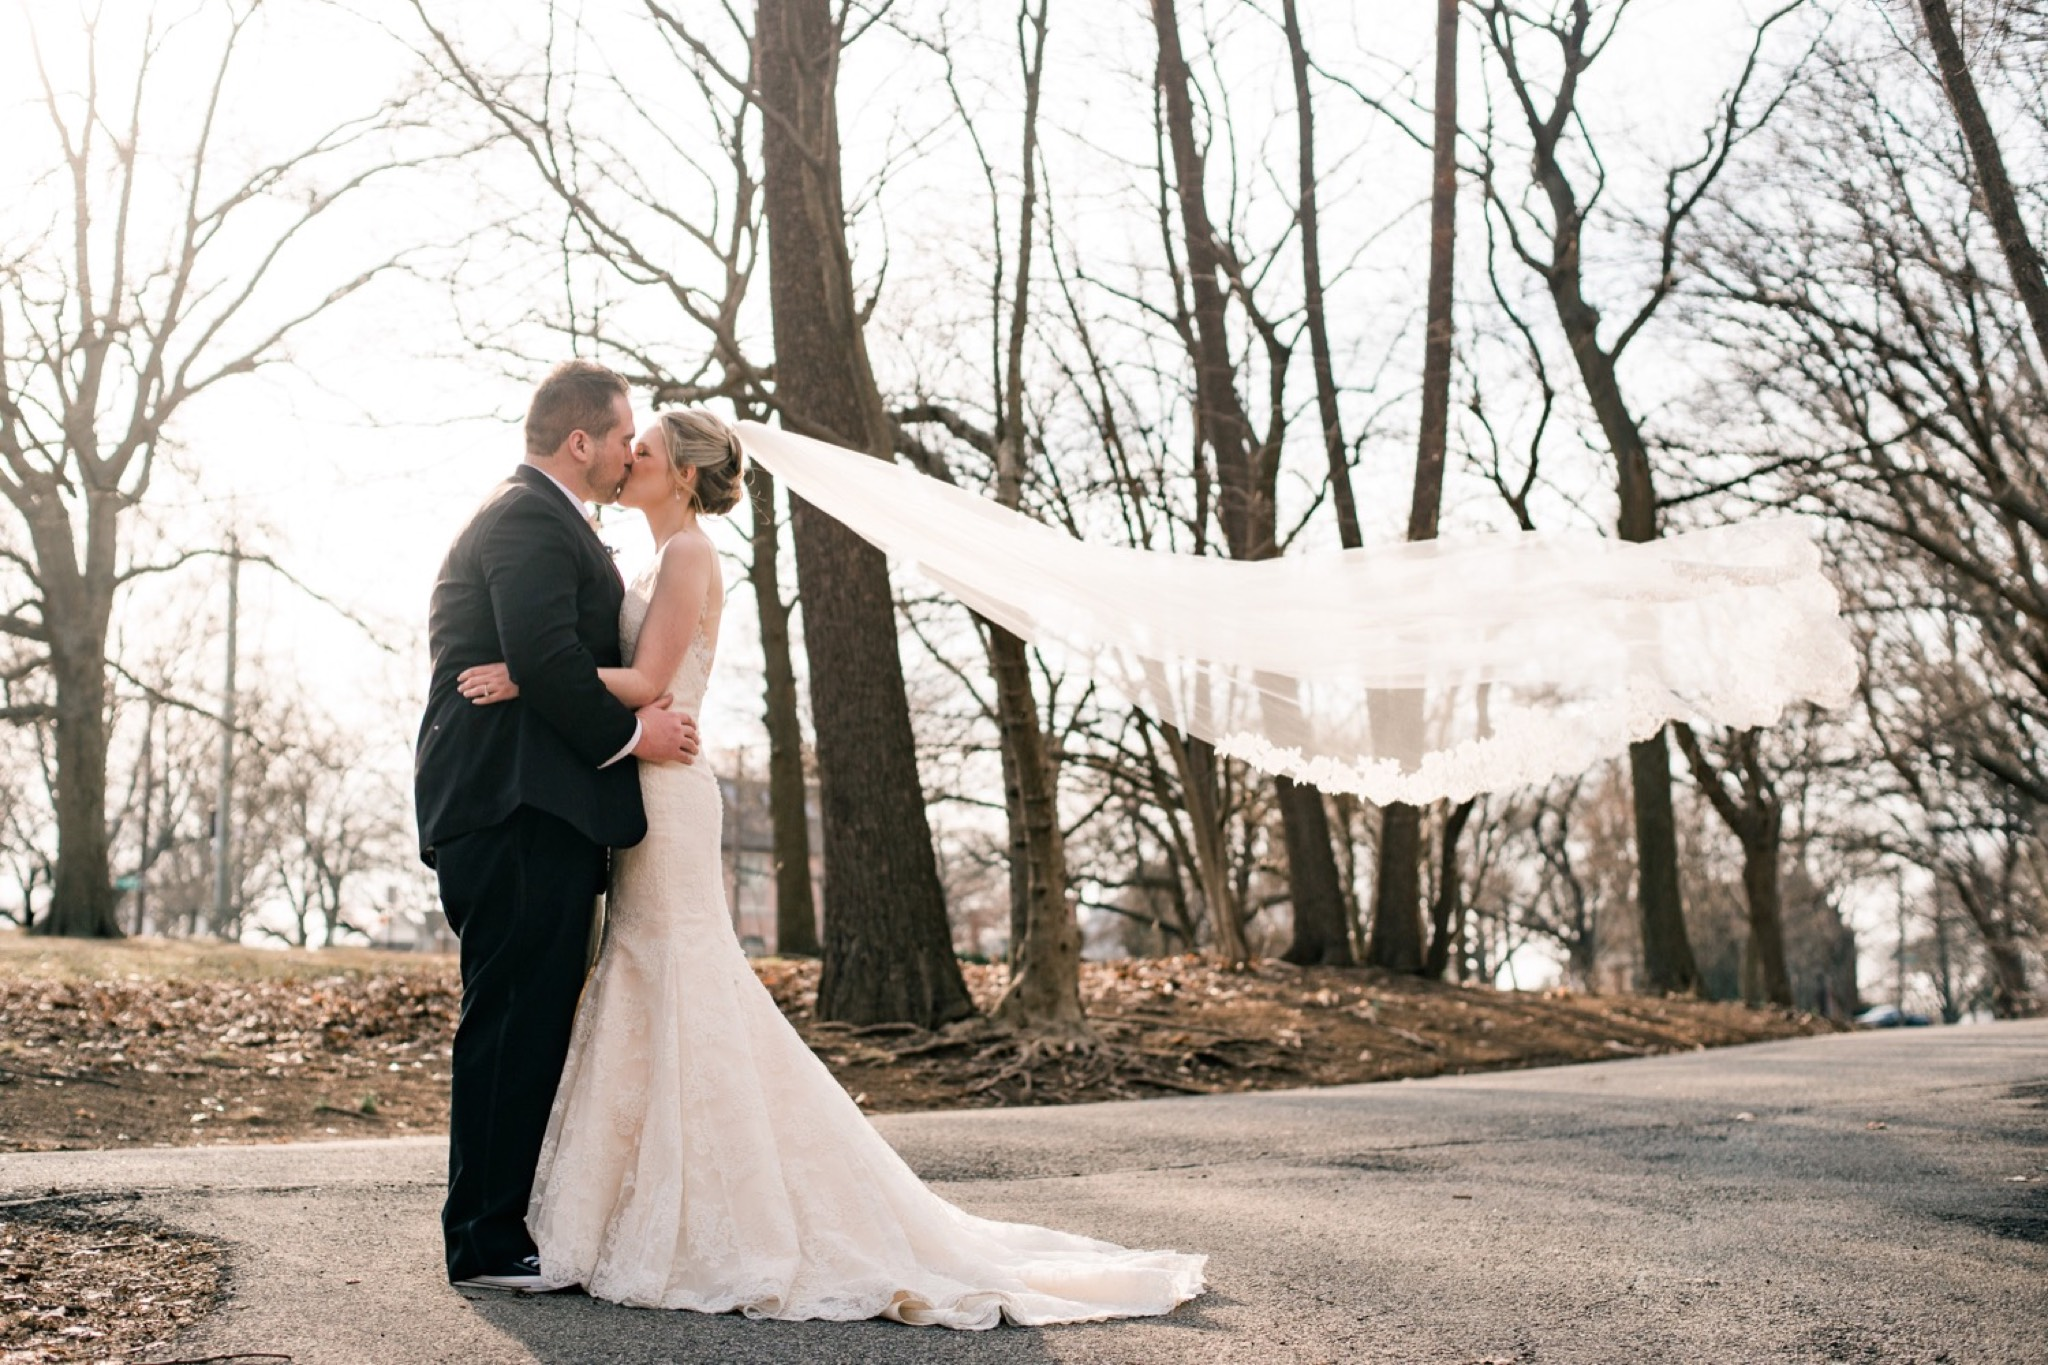 Veil Photo Staten Island Wedding